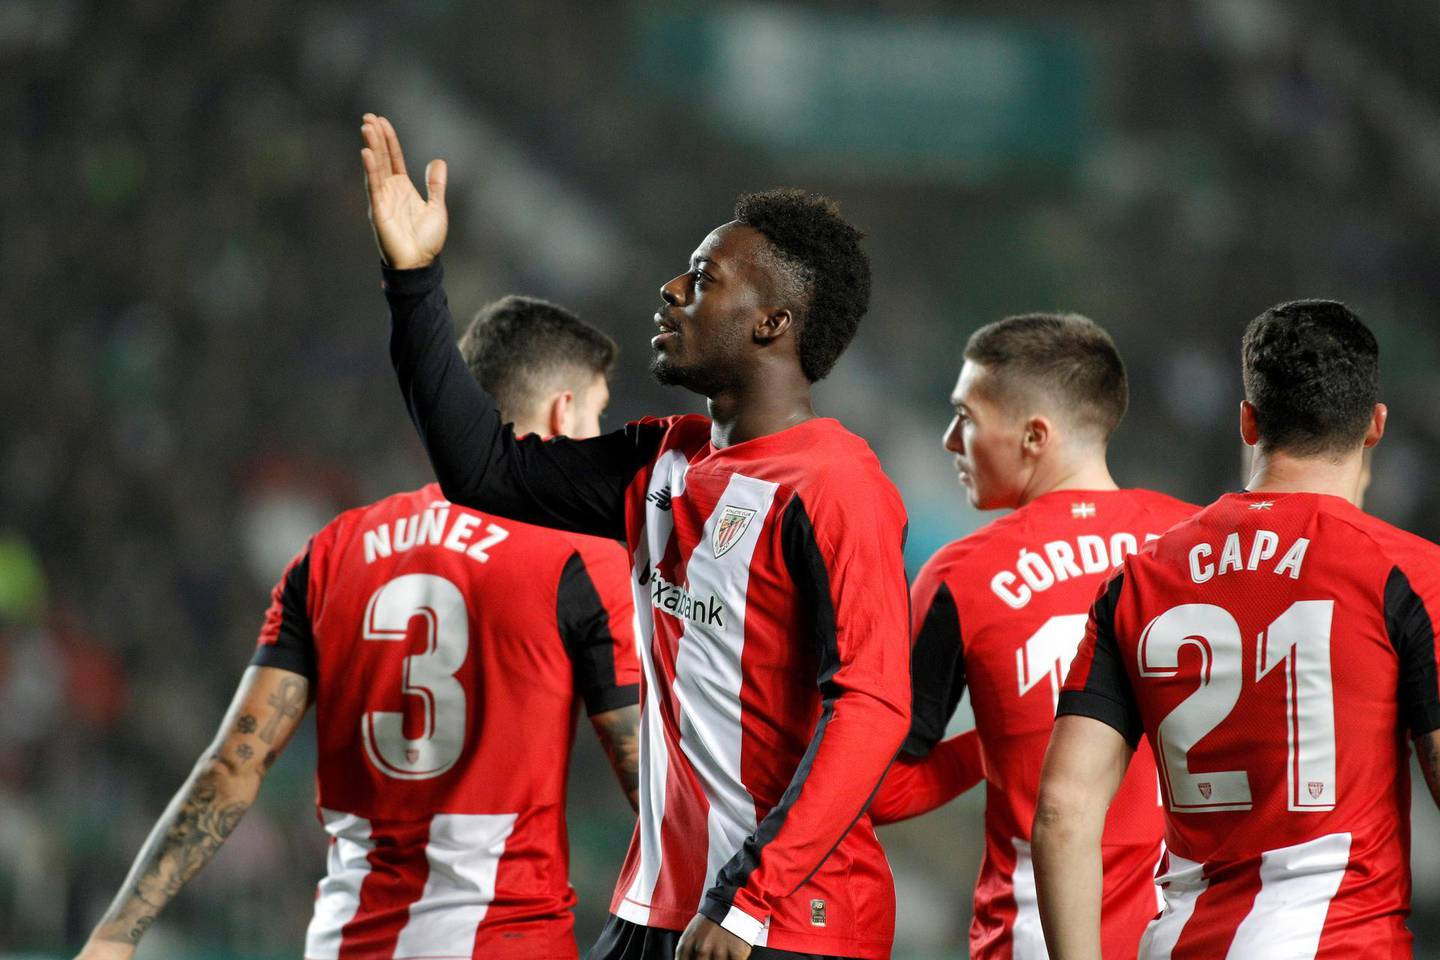 epa08151793 Ahtletic Club Bilbao's Spanish striker Inaki Williams (2-L) celebrates after scoring the 0-1 during their the King's Cup round of 32 soccer match between Elche CF and Athletic Club Bilbao at Manuel Martinez Valero stadium in Elche, Spain, 22 January 2020.  EPA/Morell